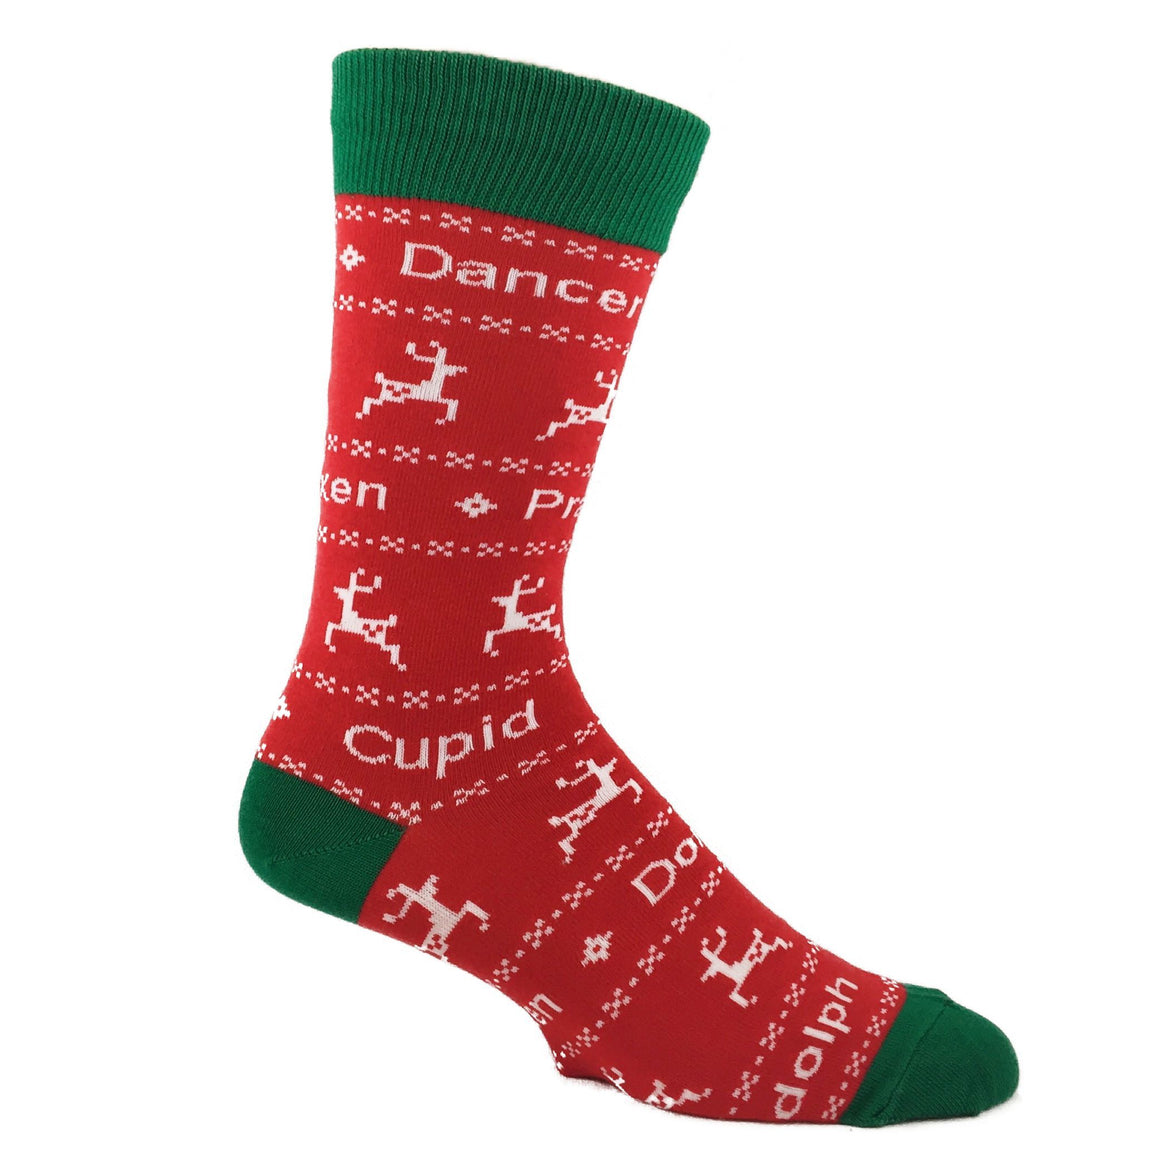 Socks - You Know Dasher And Dancer... Christmas Socks